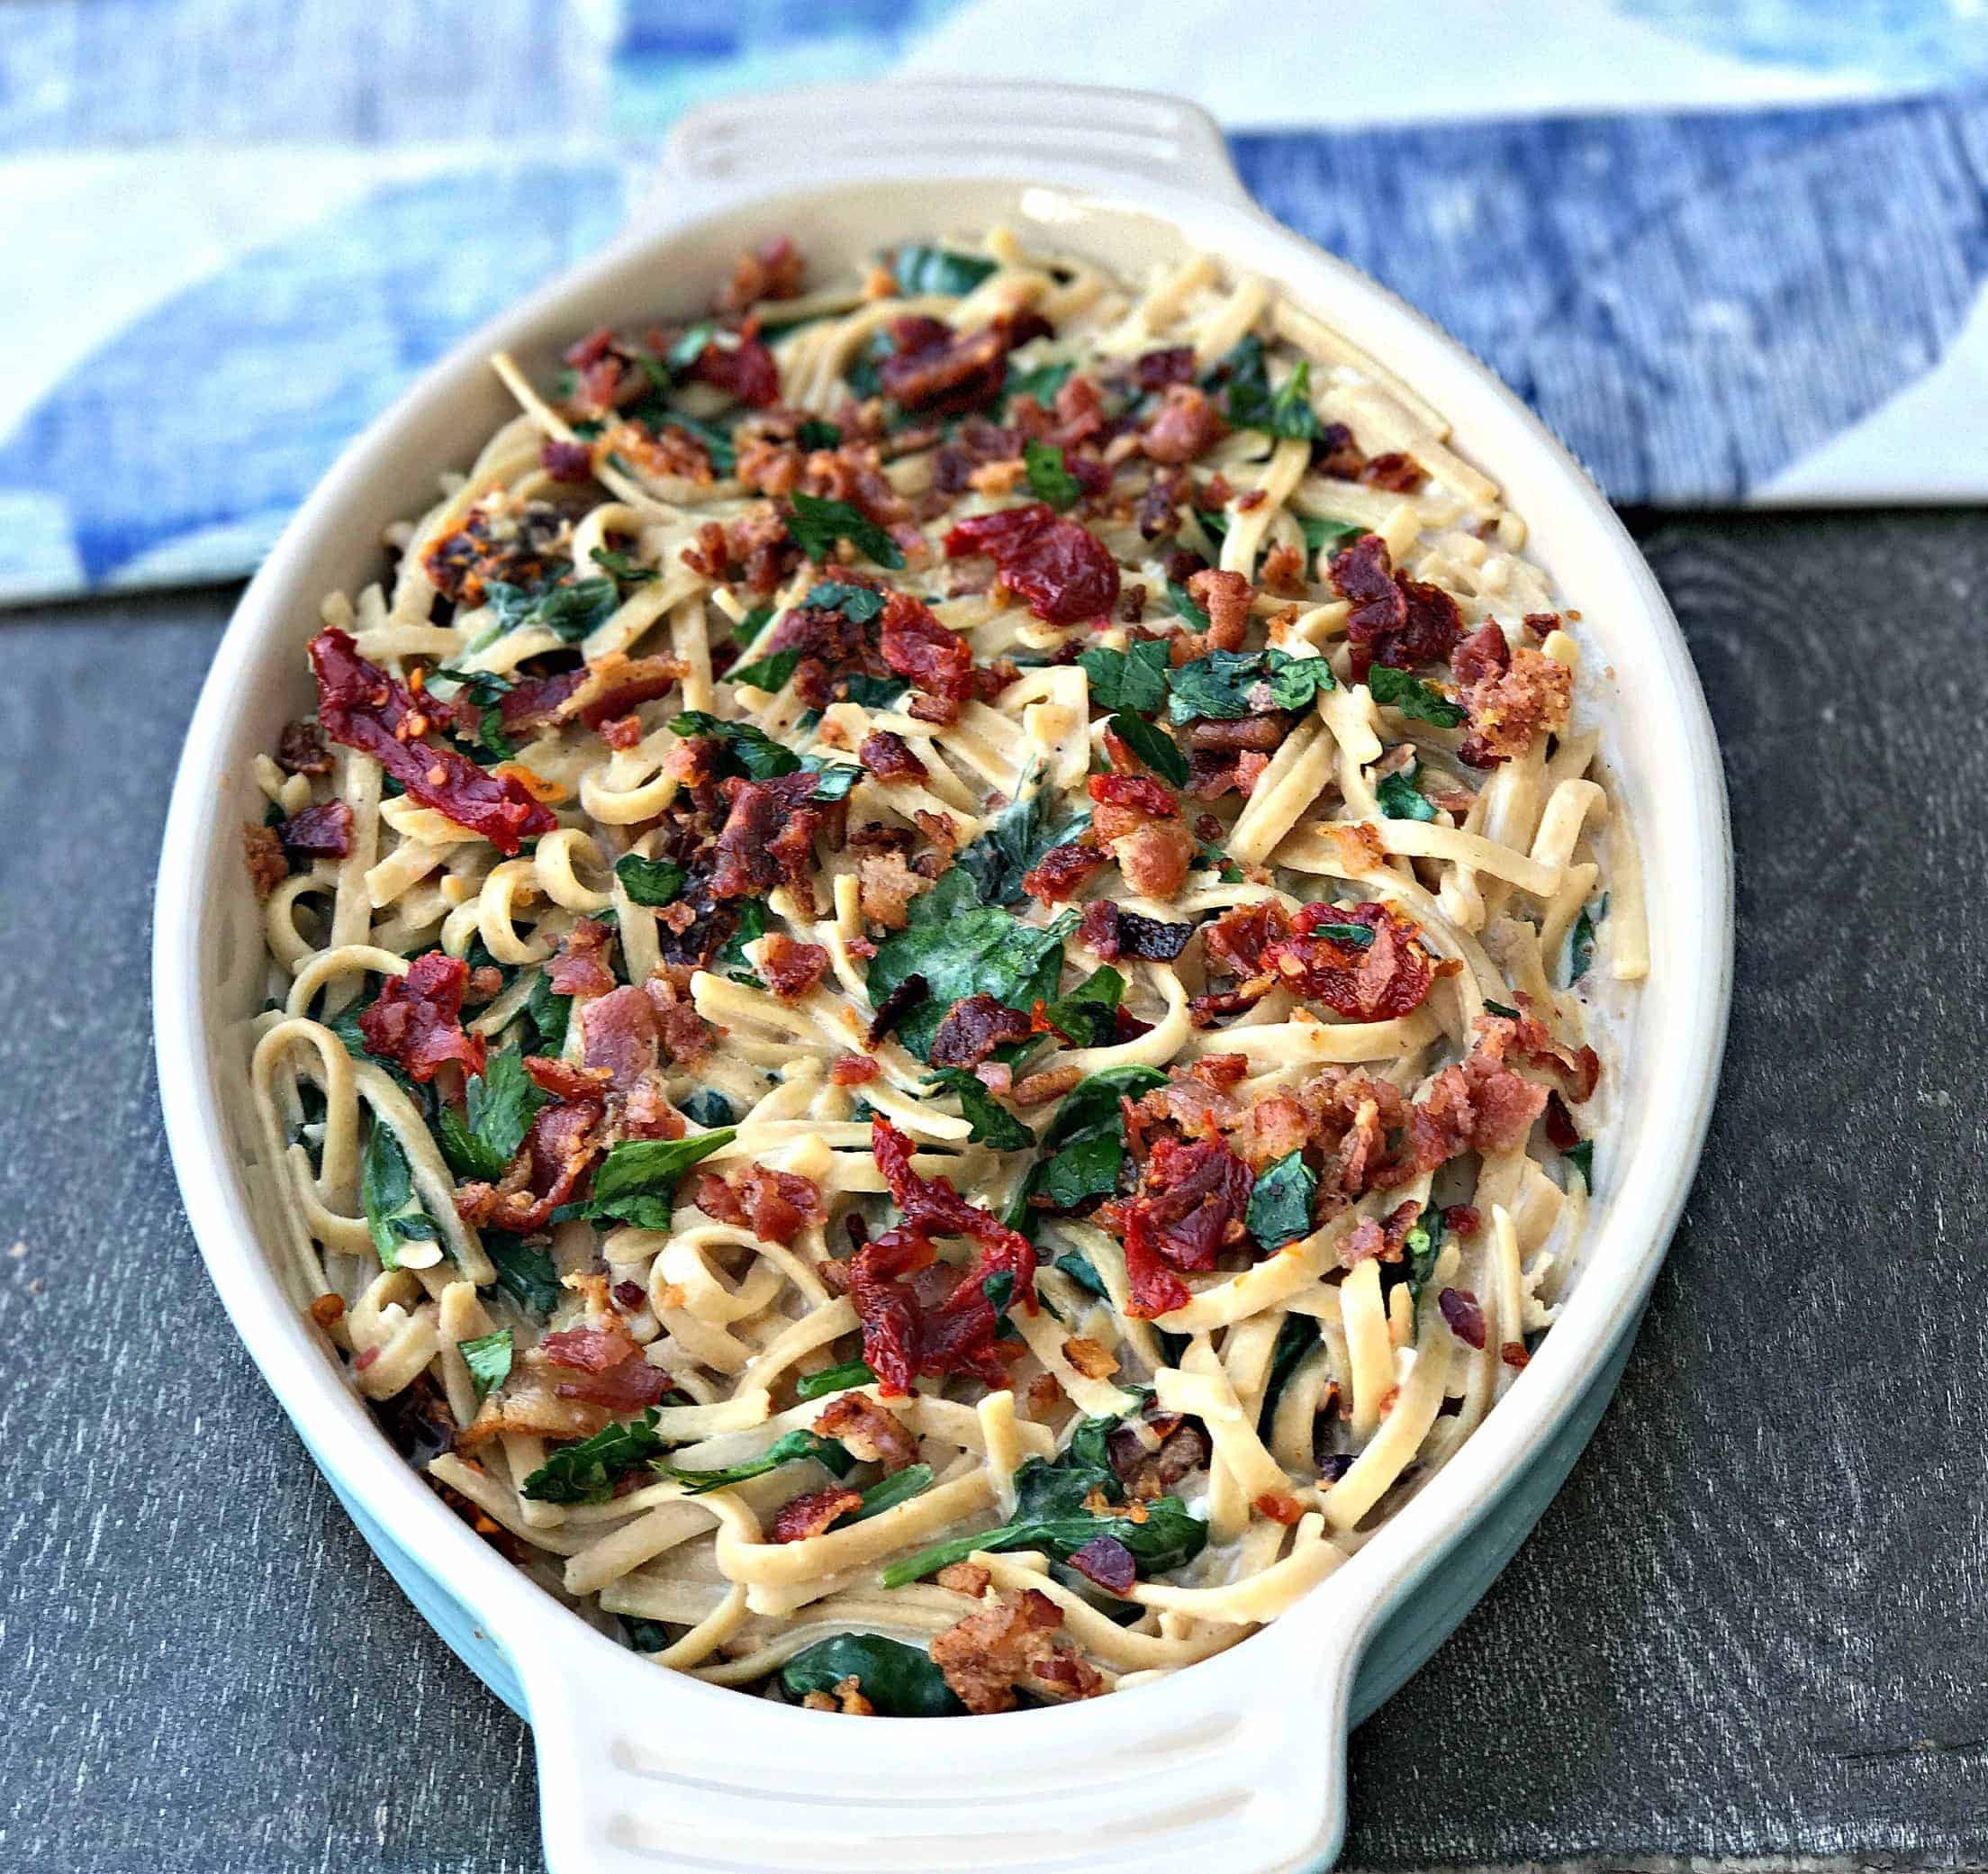 Bacon, Egg, and Spinach Whole Wheat Breakfast Pasta in a baking dish